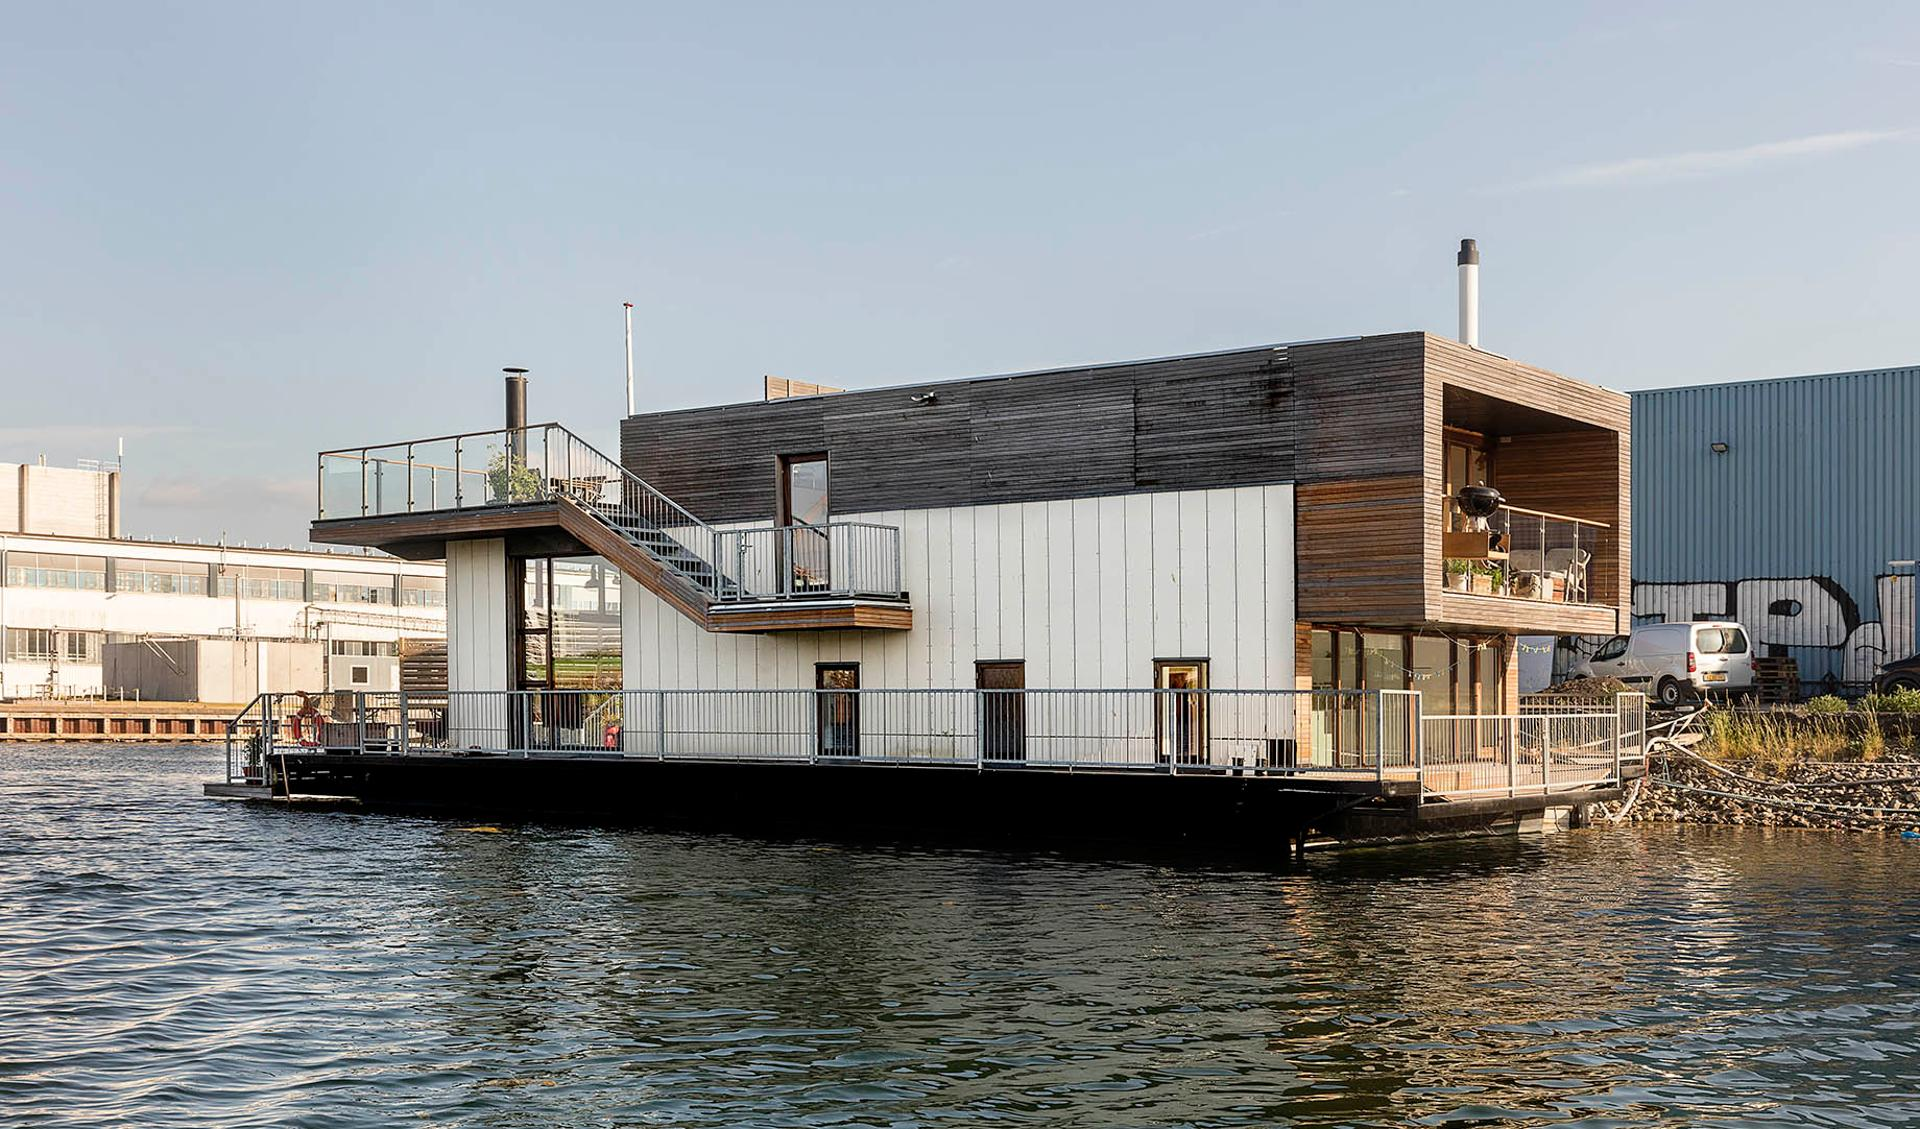 A cubic modern houseboat sits in Copenhagen's Teglholmen harbor, and features plenty of outdoor terrace space in addition to its high-ceilinged living room and two bedrooms. Plenty of high-ceilinged windows allow for sweeping views of the harbor, and outd